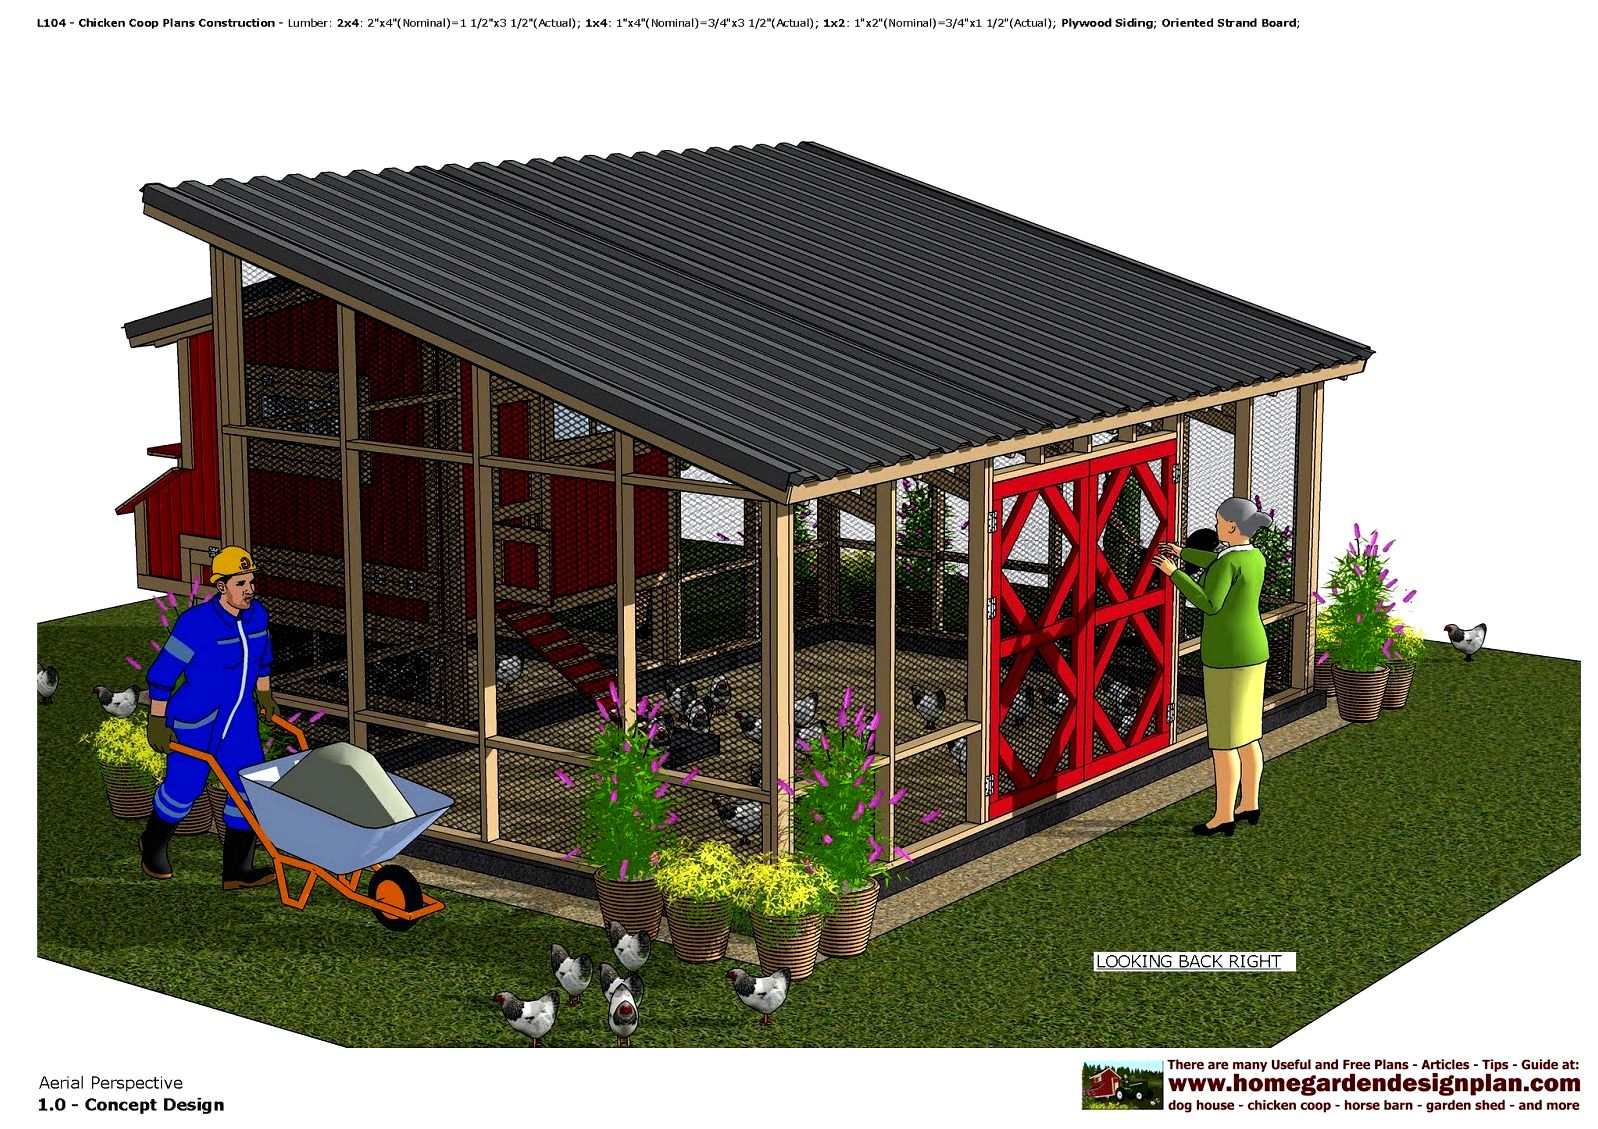 Help guide to designing the right chicken house - time, the backyard